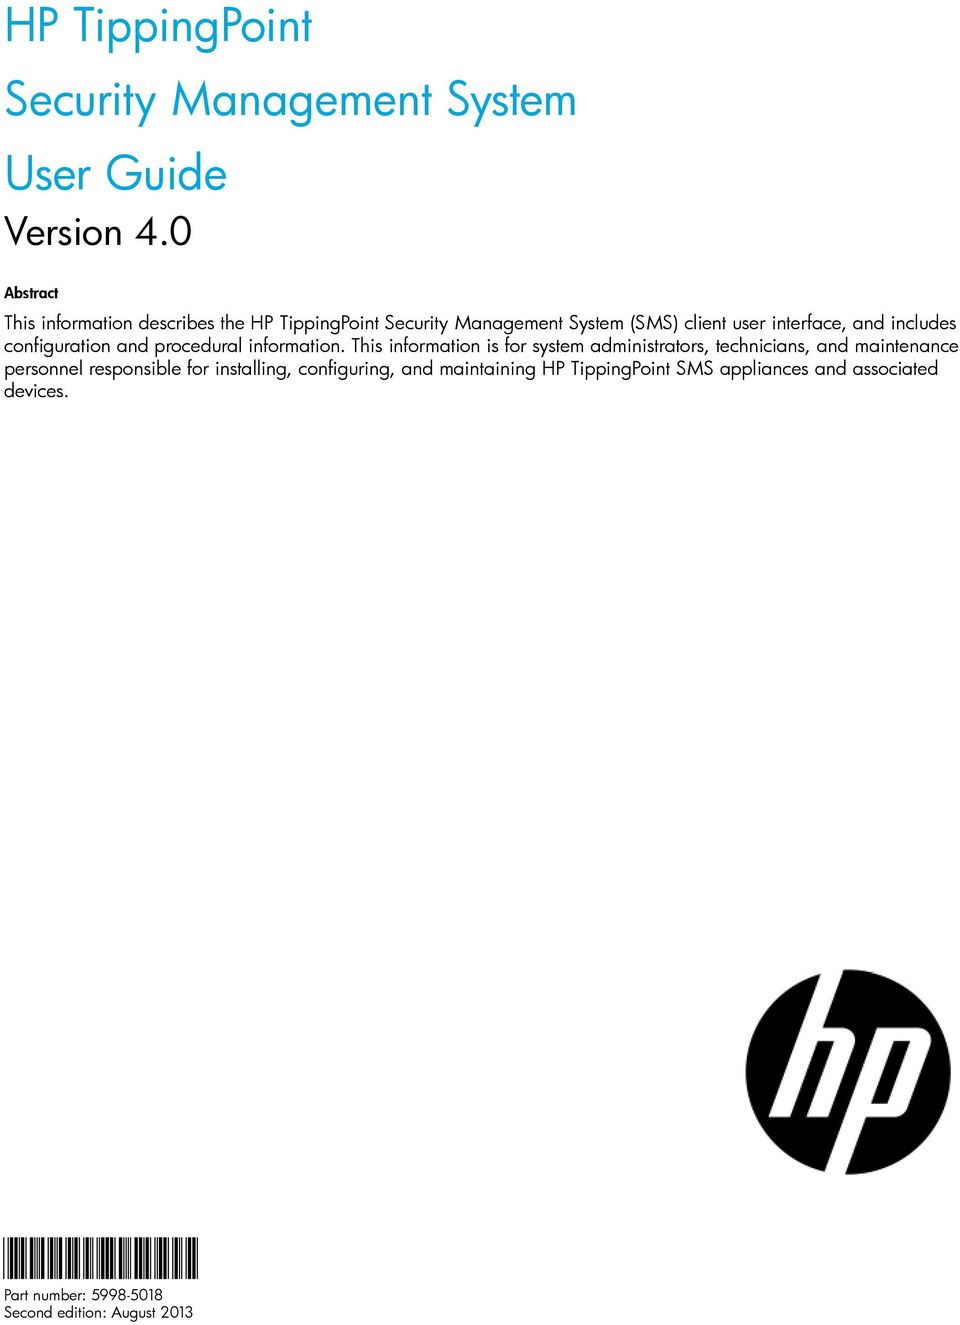 HP TippingPoint Security Management System User Guide - PDF